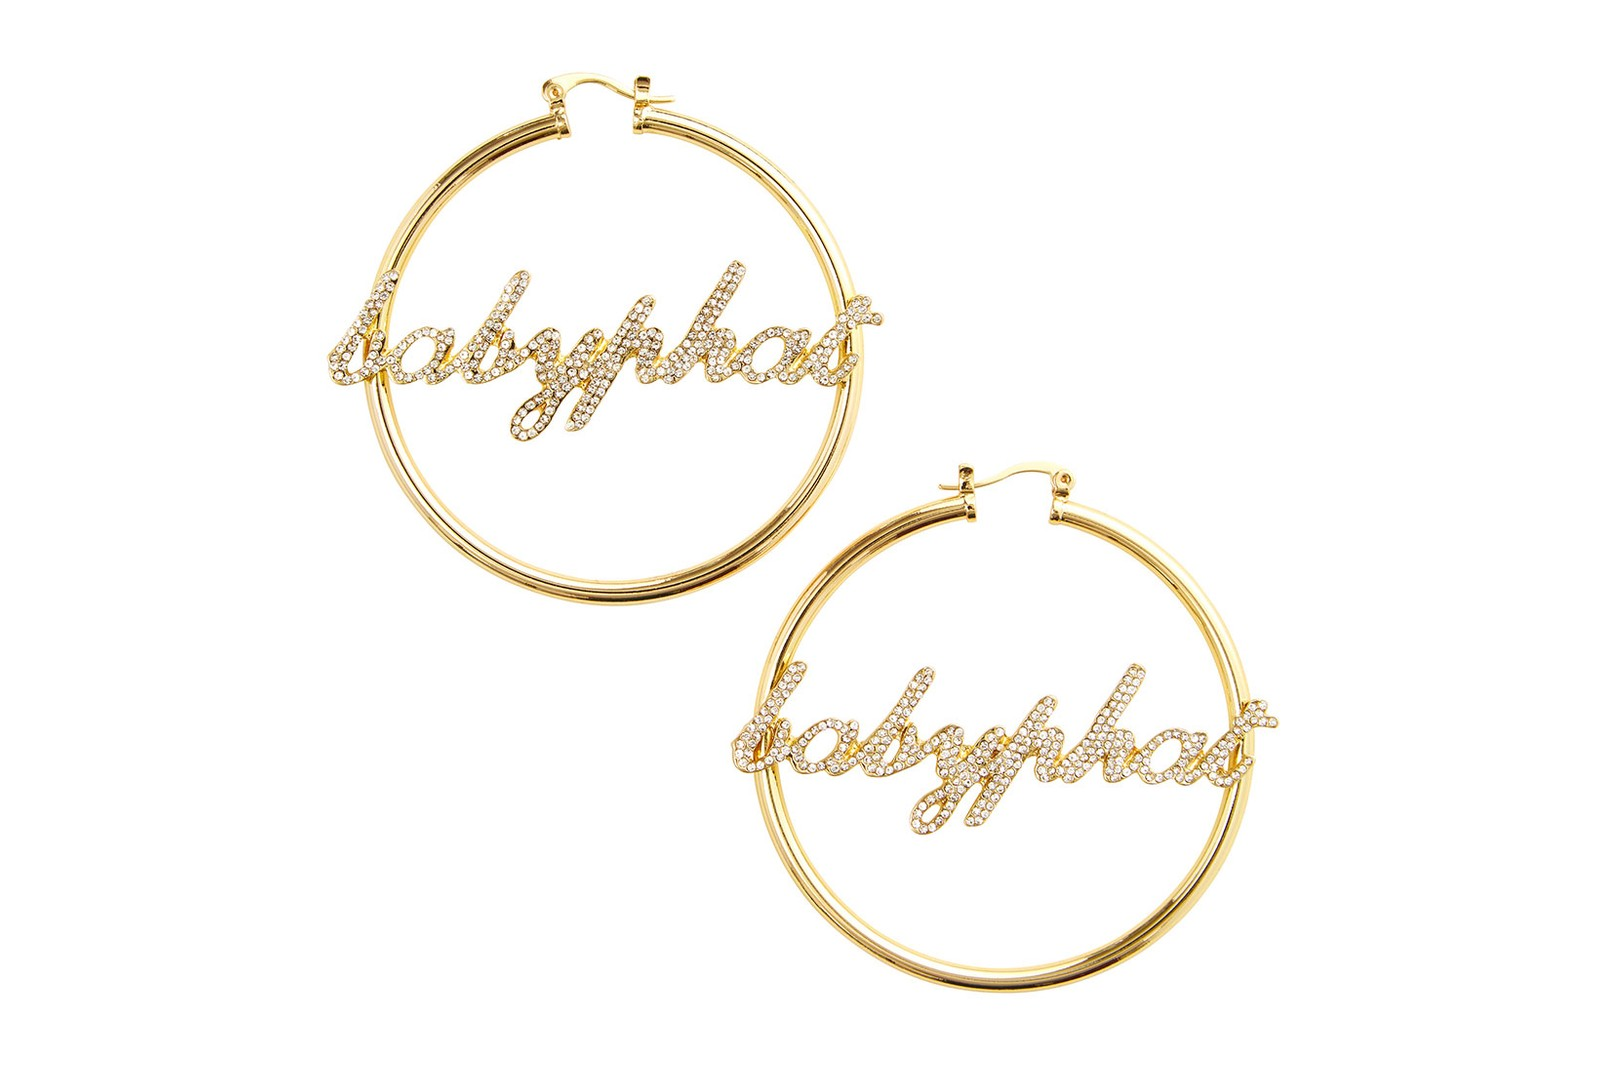 baby phat jewelry capsule collection 18k yellow gold earrings necklaces price where to buy kimora lee simmons